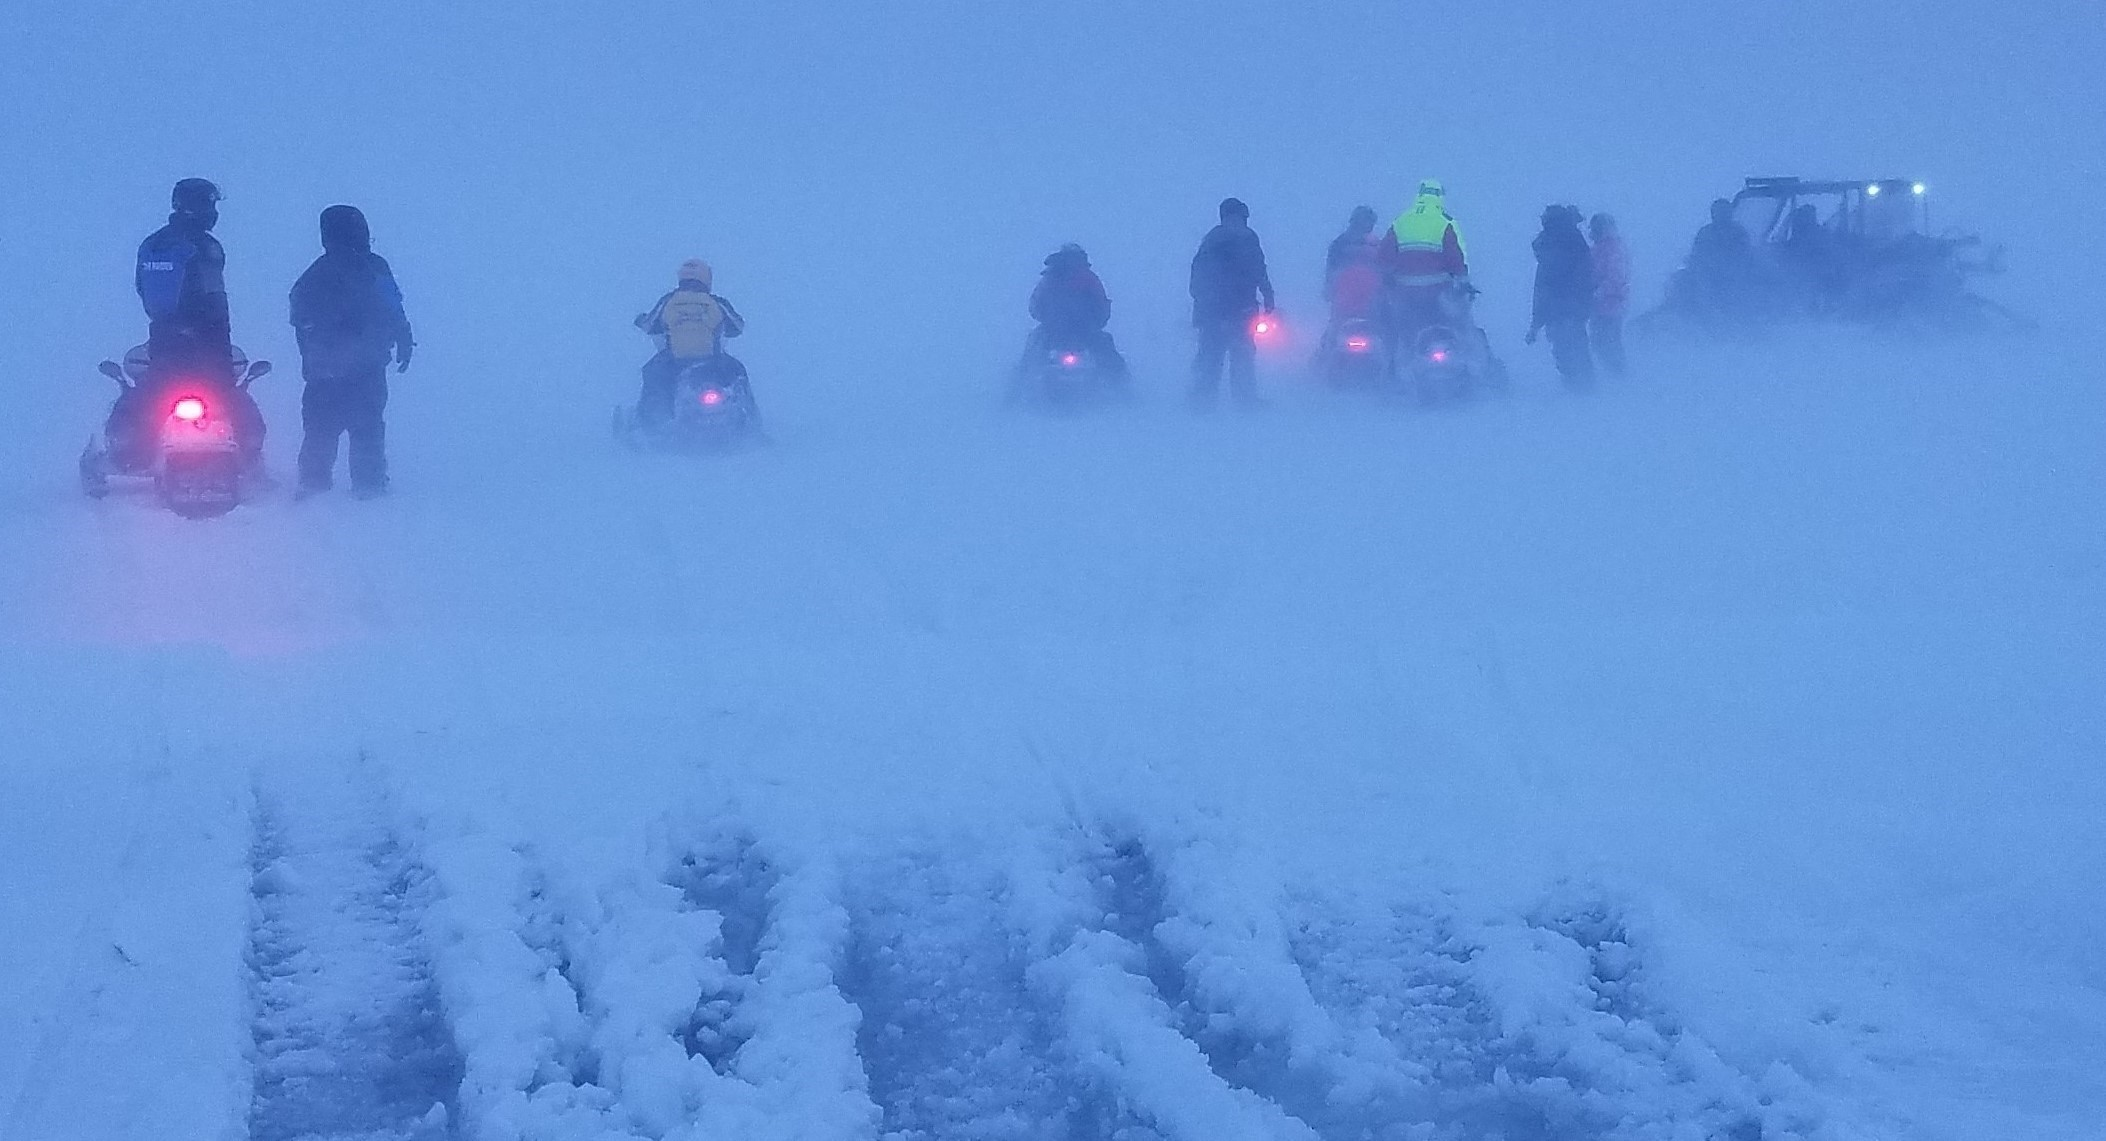 WDNR Wardens, Sturgeon Bay Fire Department members and a good samaritan gather to rescue 30 ice anglers trapped in a whiteout on February 24!